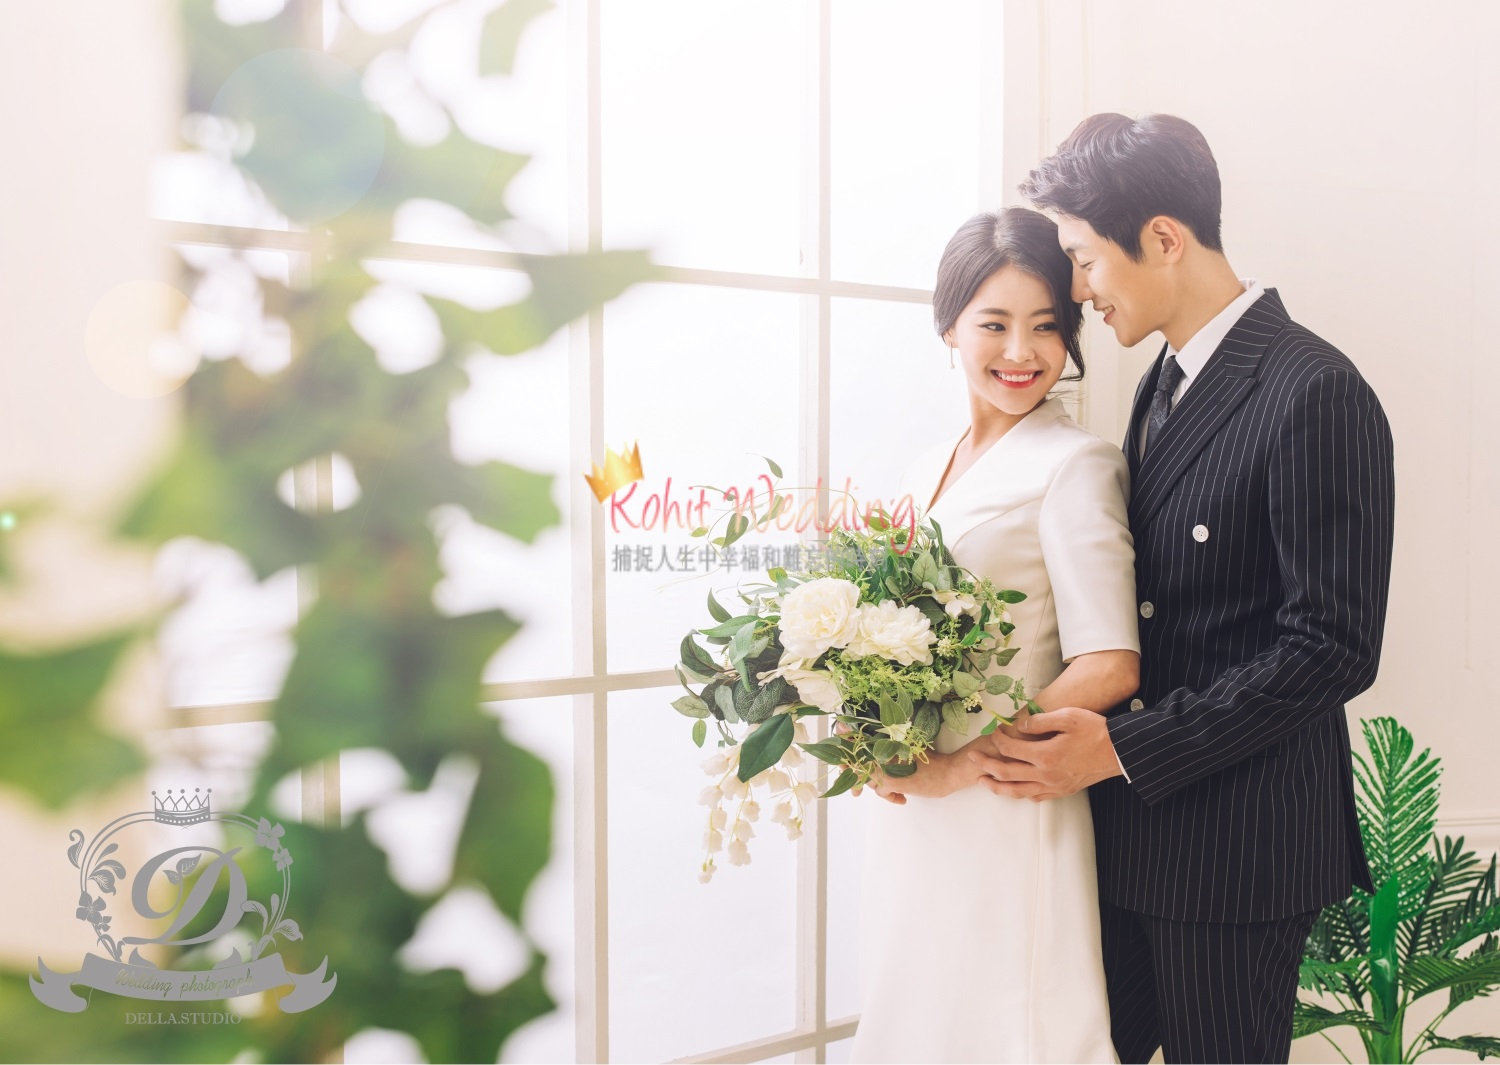 Korea Pre Wedding Kohit Wedding 8